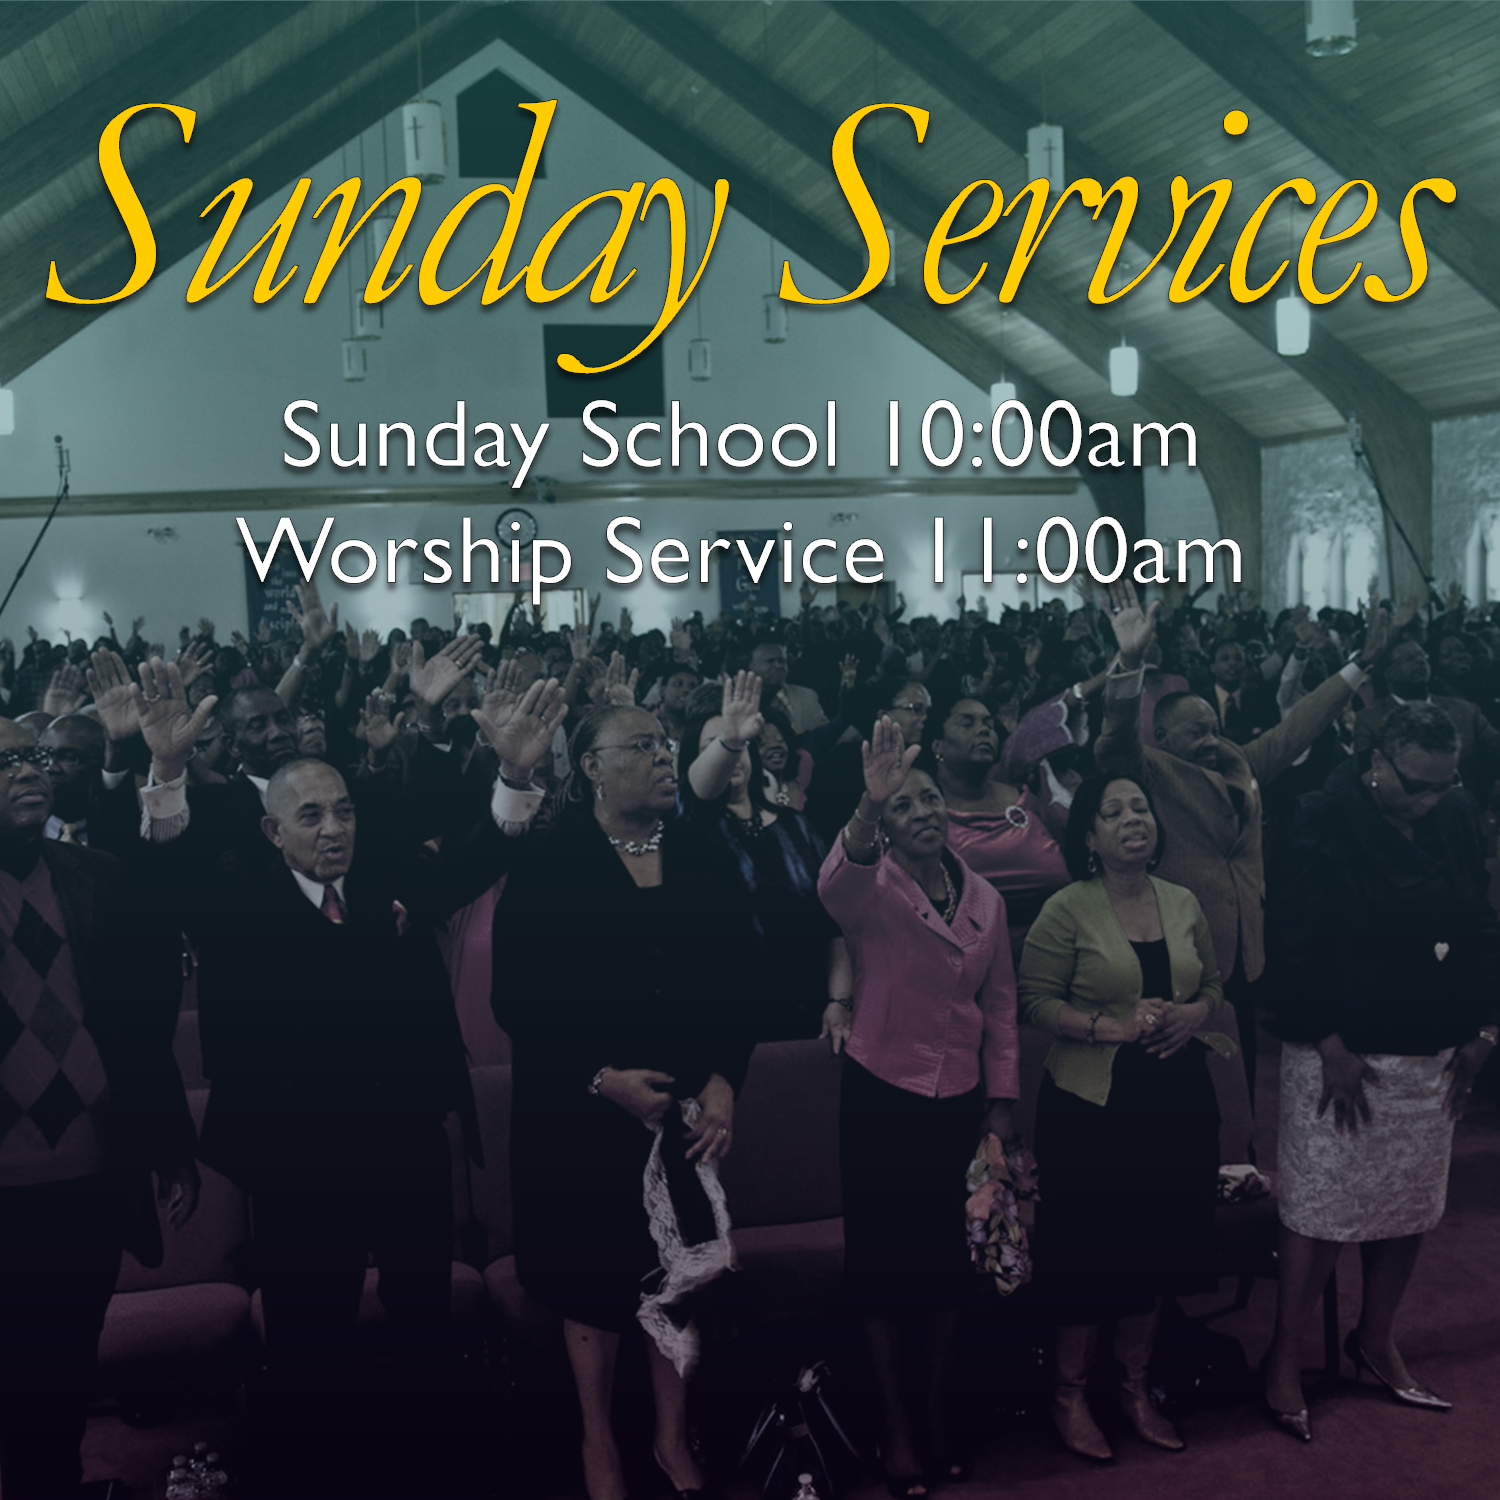 Sunday Services2